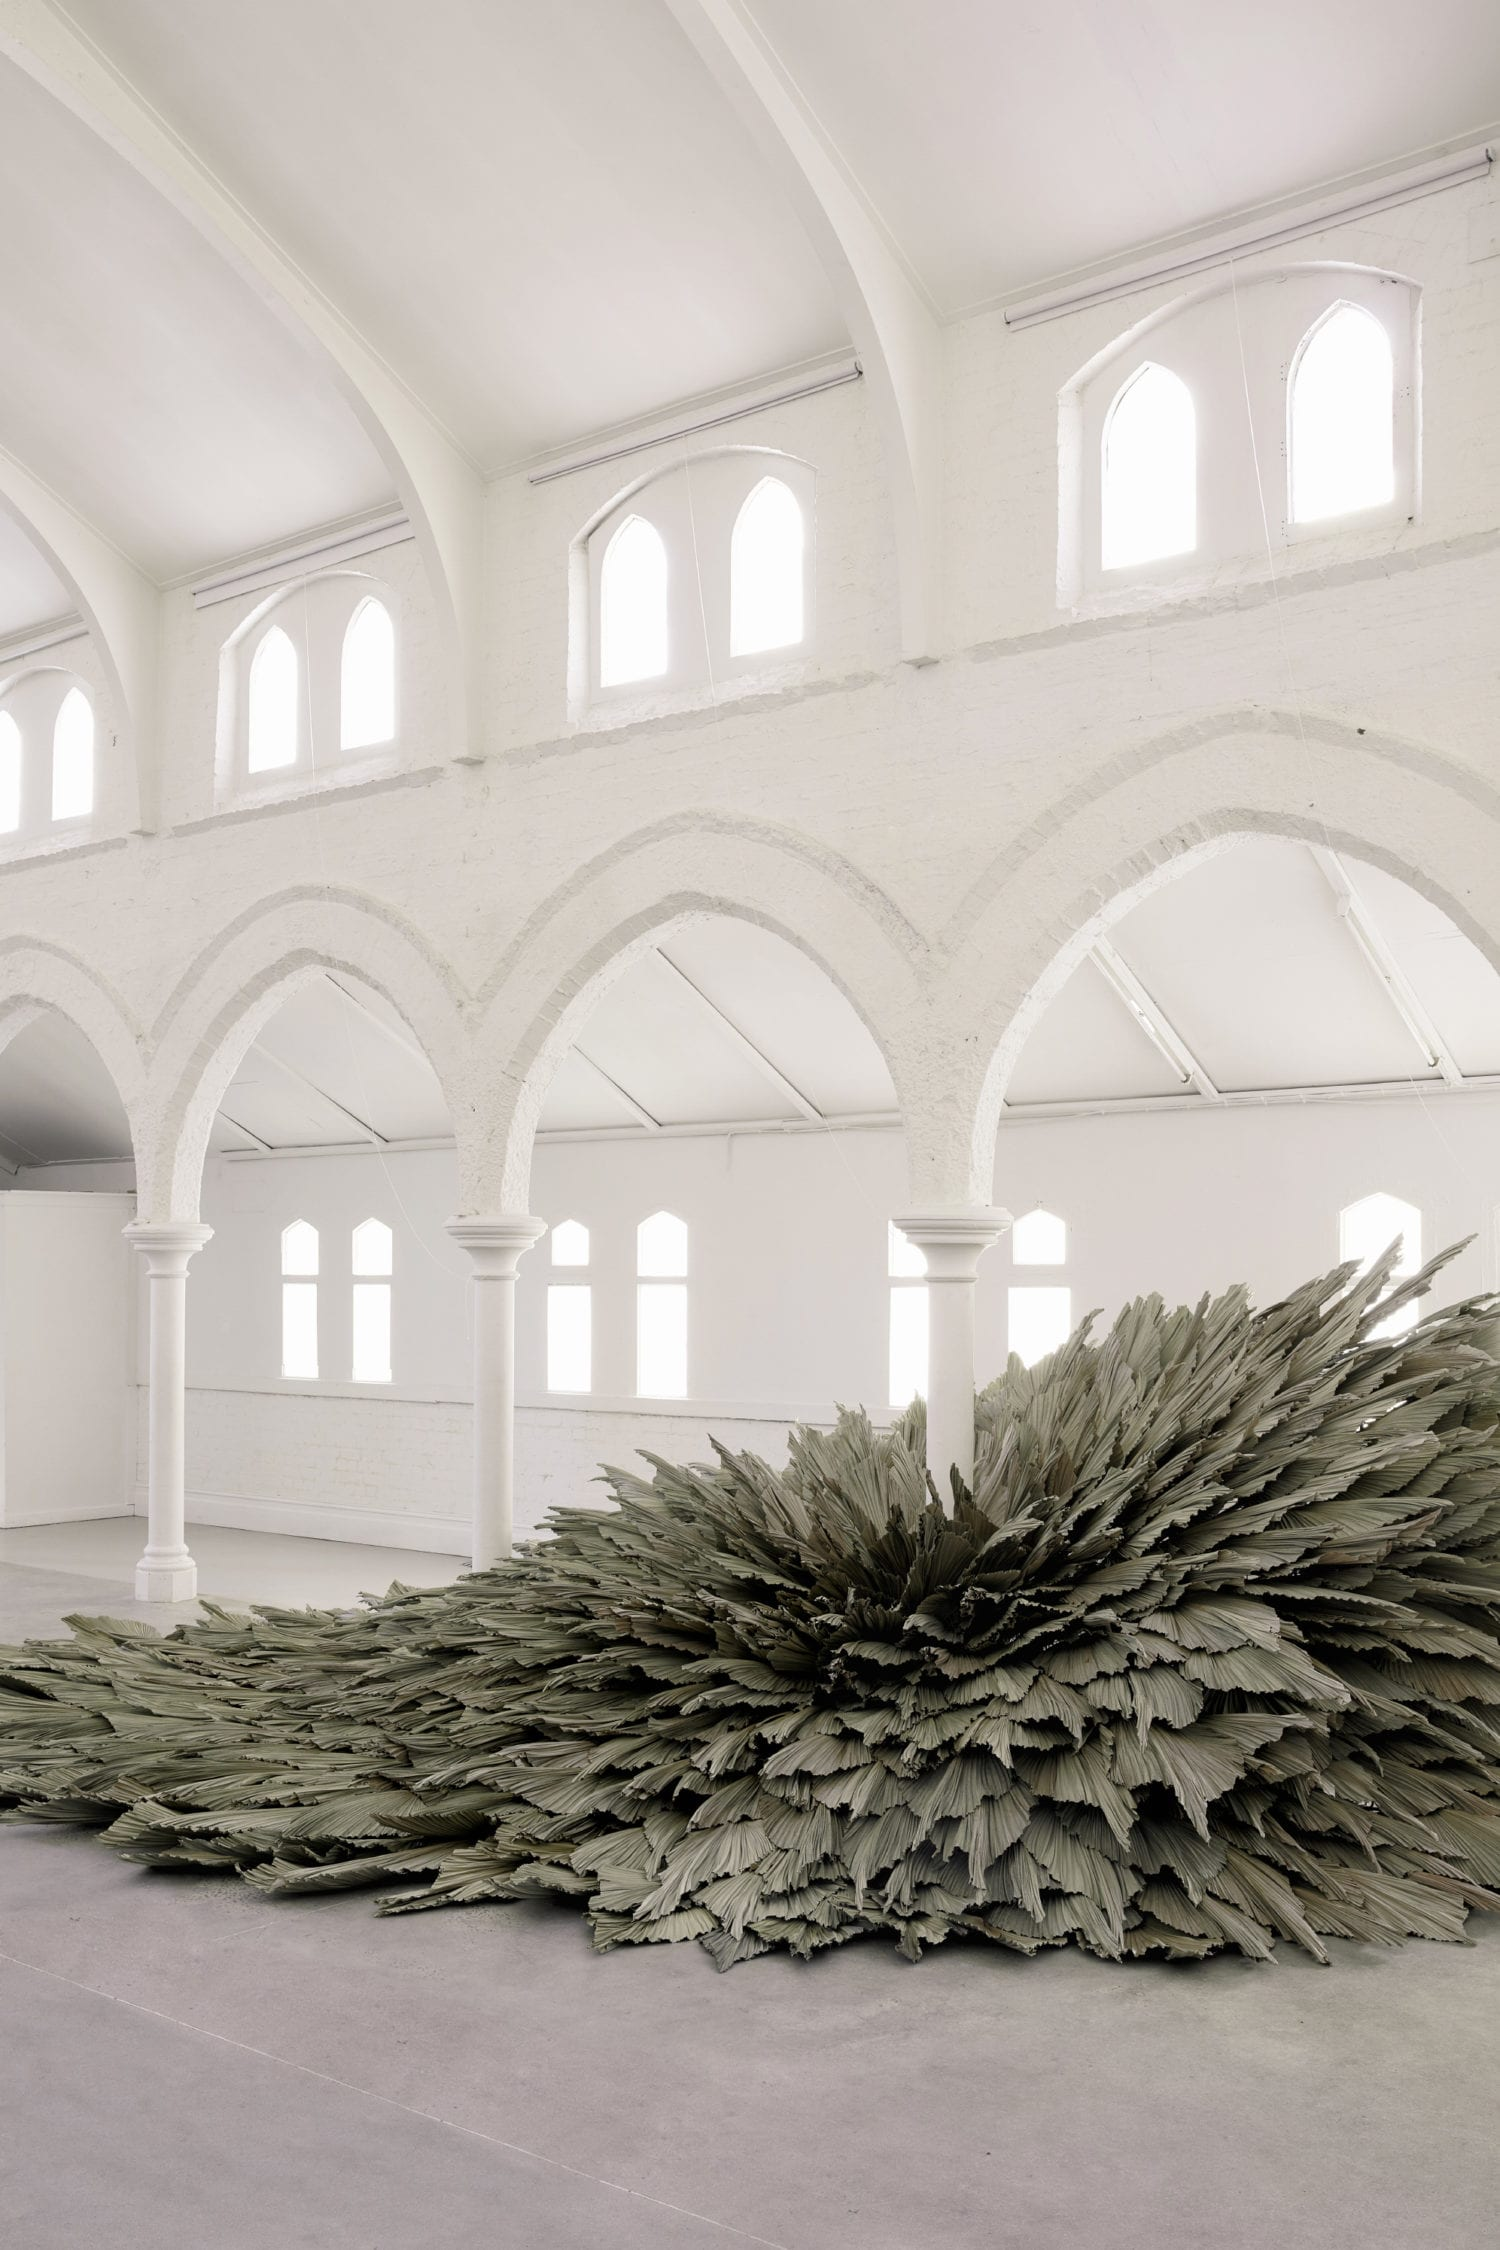 Proximity Botanical Installation By Wona Bae And Charlie Lawler Of Loose Leaf Yellowtrace 04